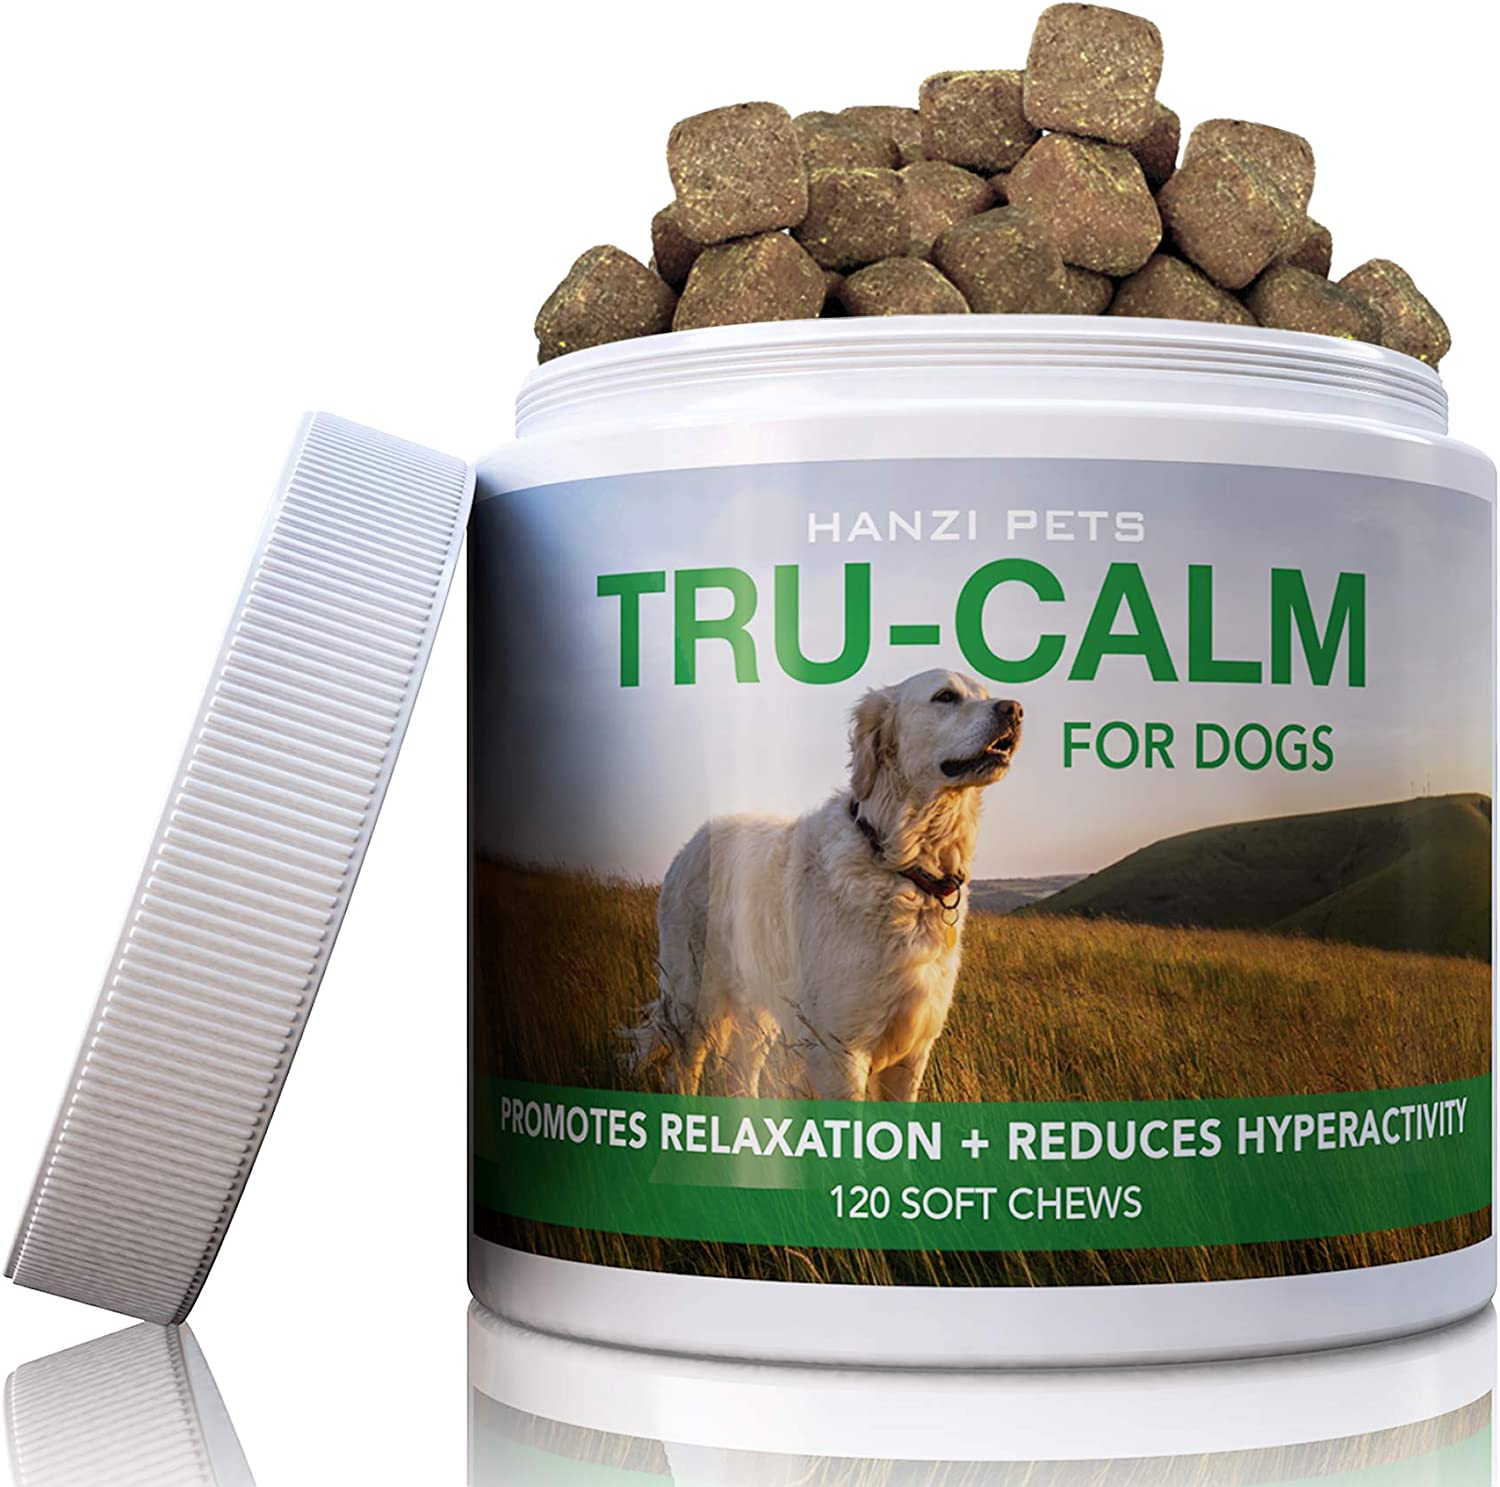 Hanzi Pets #1 Calming Aid for Dogs | for Hyperactive & Aggressive Behavior | Stress & Separation Anxiety | Travel & Motion Sickness | cGMP Certified | Made in USA | 120 Savory Soft Chews